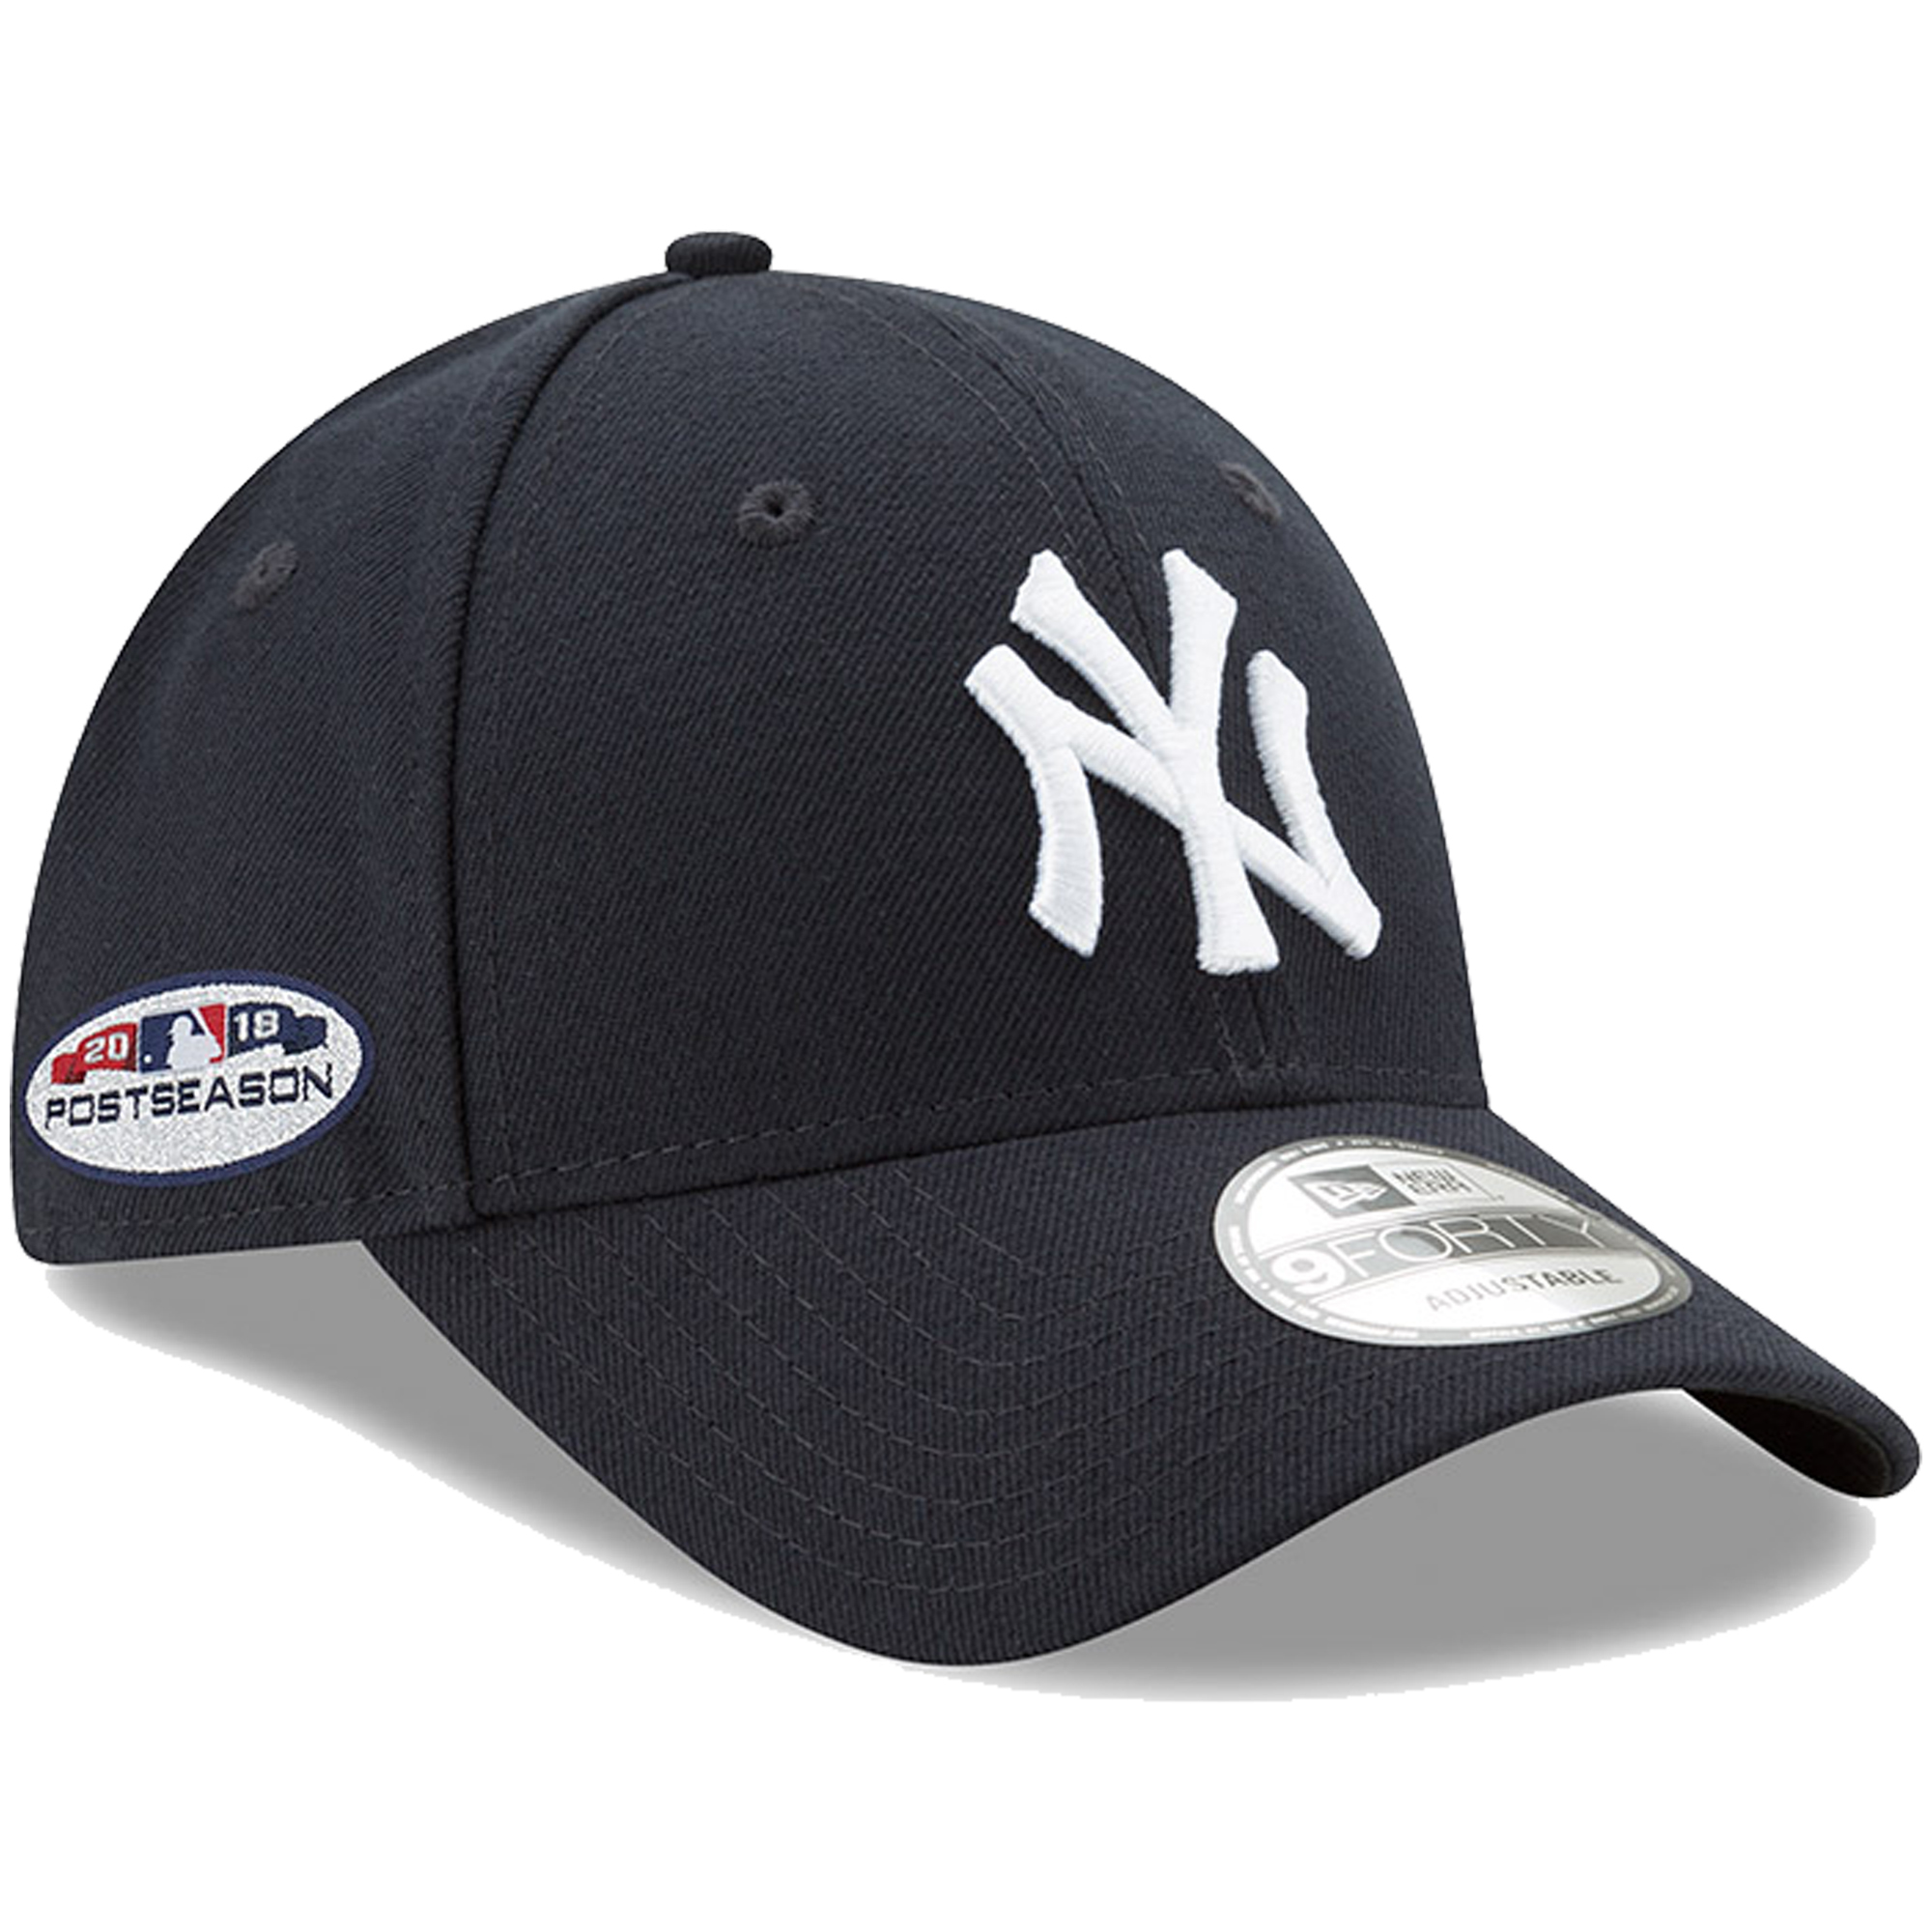 New York Yankees New Era 2018 Postseason Side Patch 9FORTY Adjustable Hat - Navy - OSFA